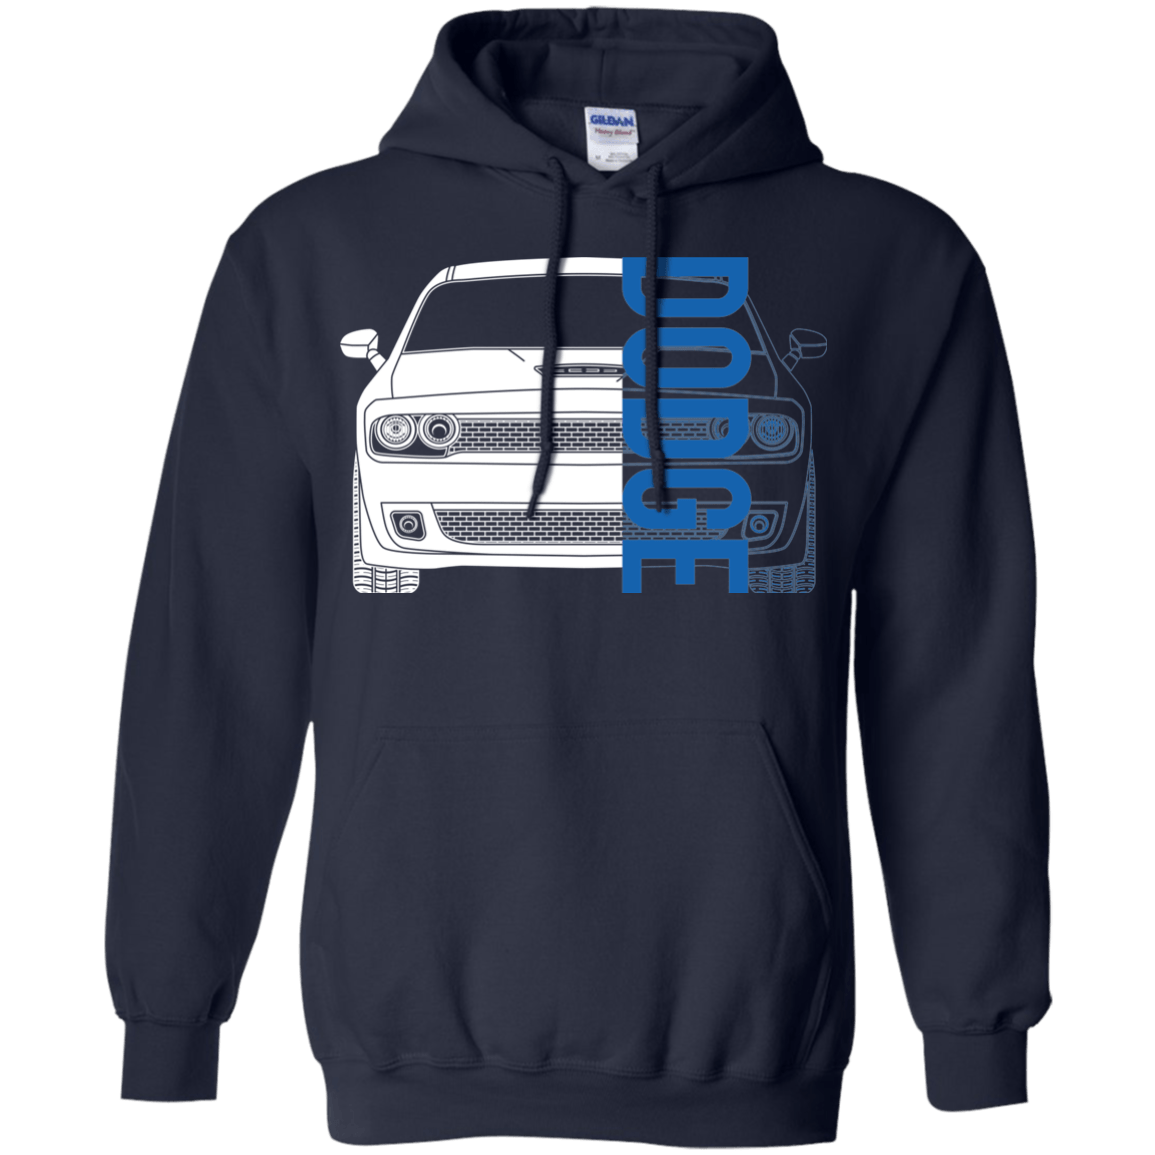 Dodge Challenger Hellcat Srt Double Sided Hoodie Hoodies Chevy Pullover Hoodie